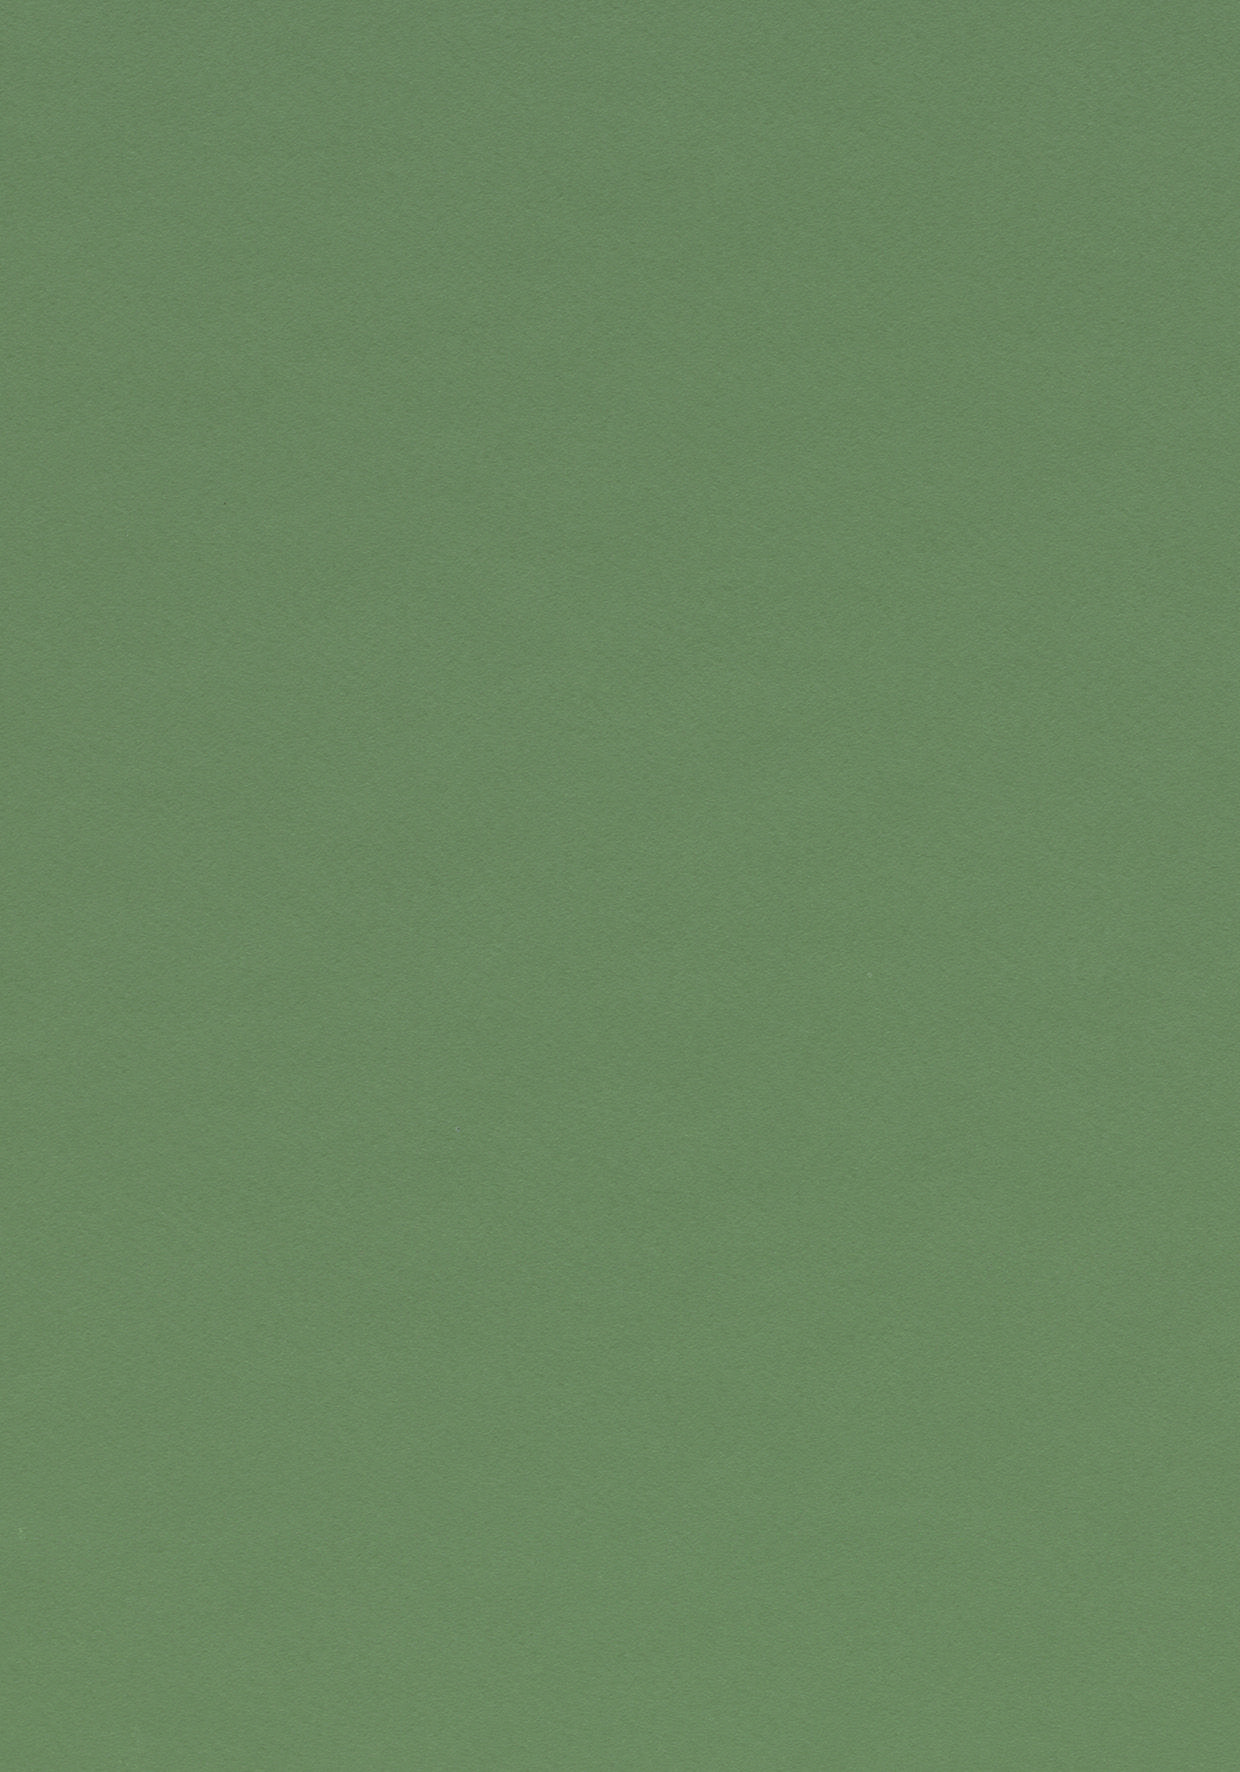 Linoleum Grau Colour Olive 4184 Desktop Furniture Linoleum Forbo Olive